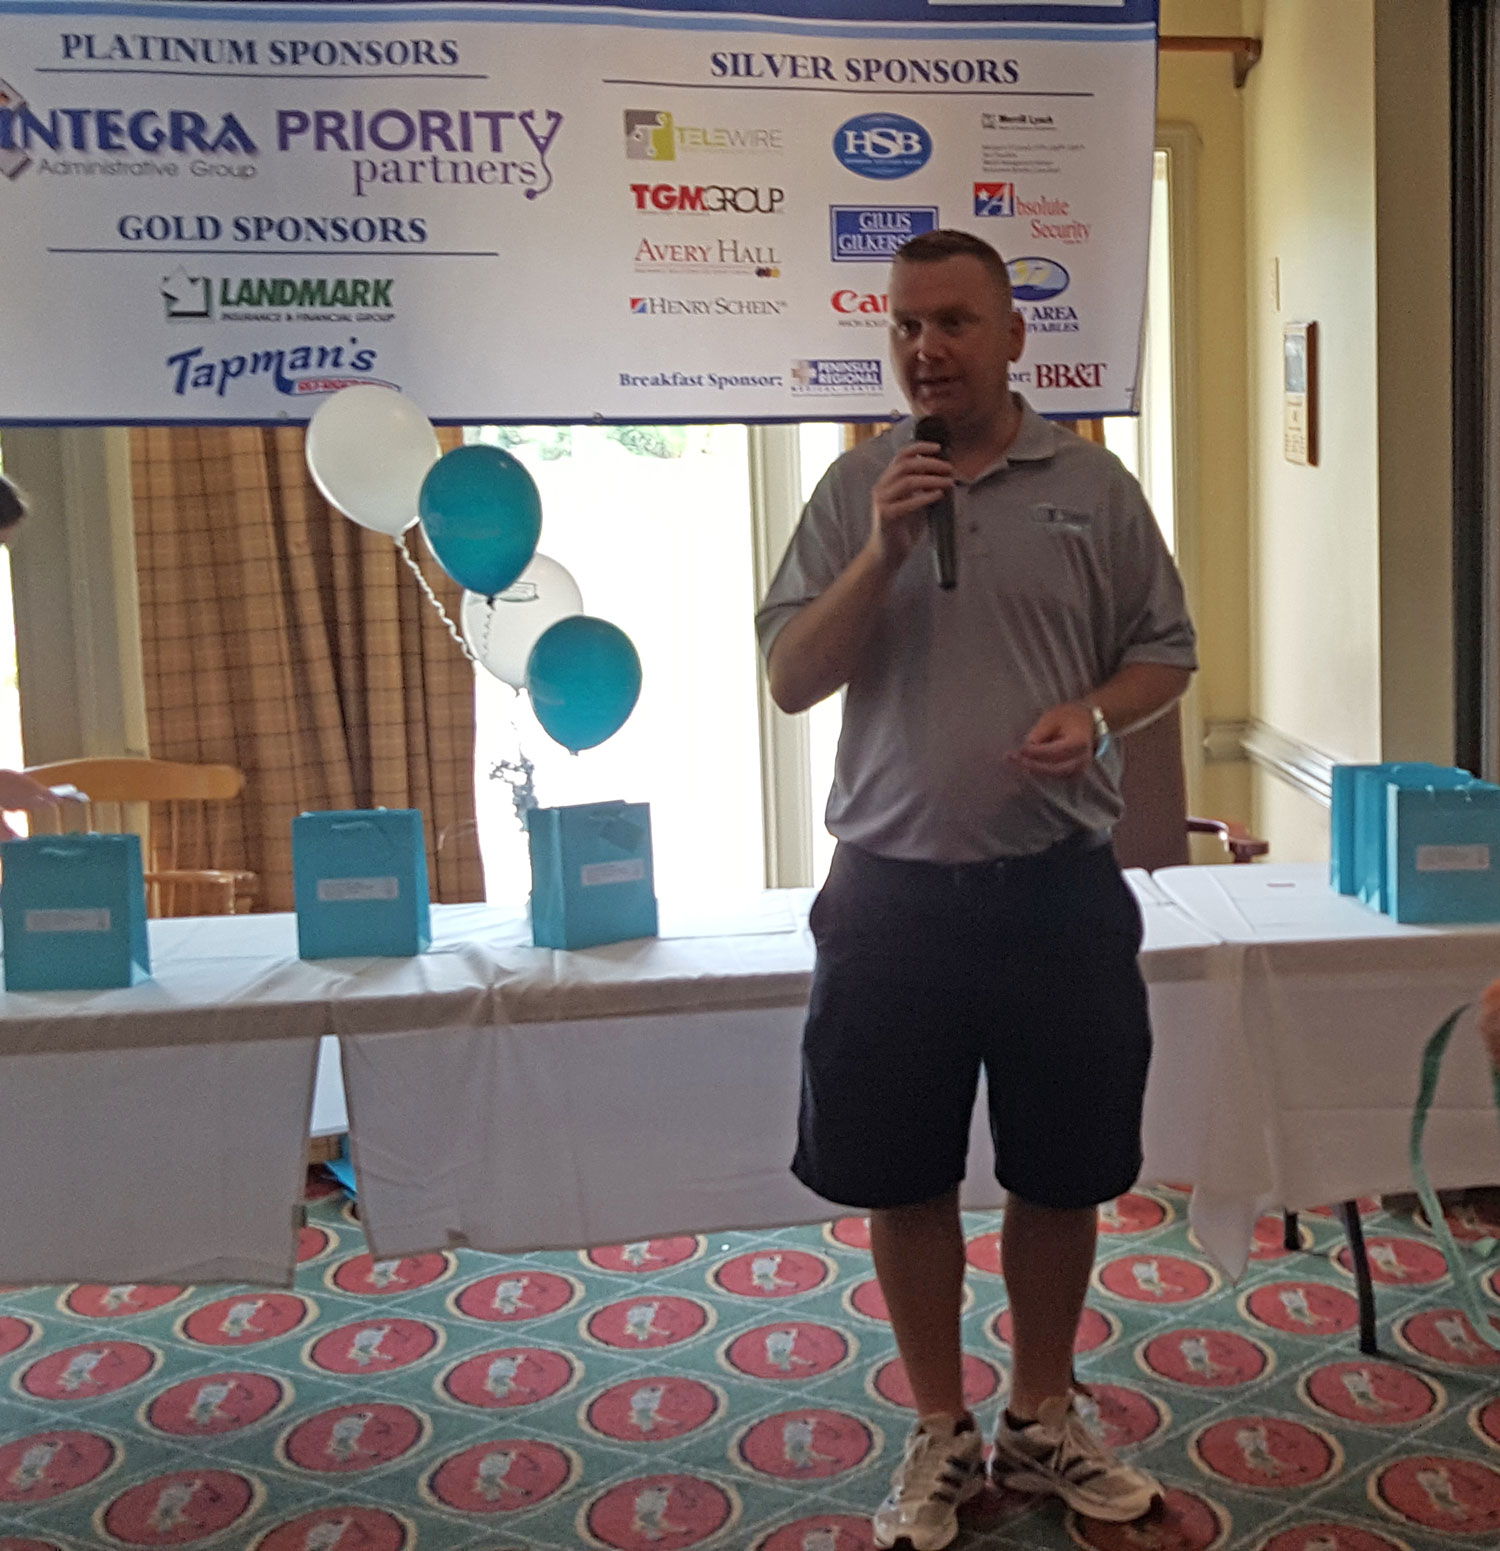 Chesapeake Health Care 6th Annual Golf Tournament gallery image #9